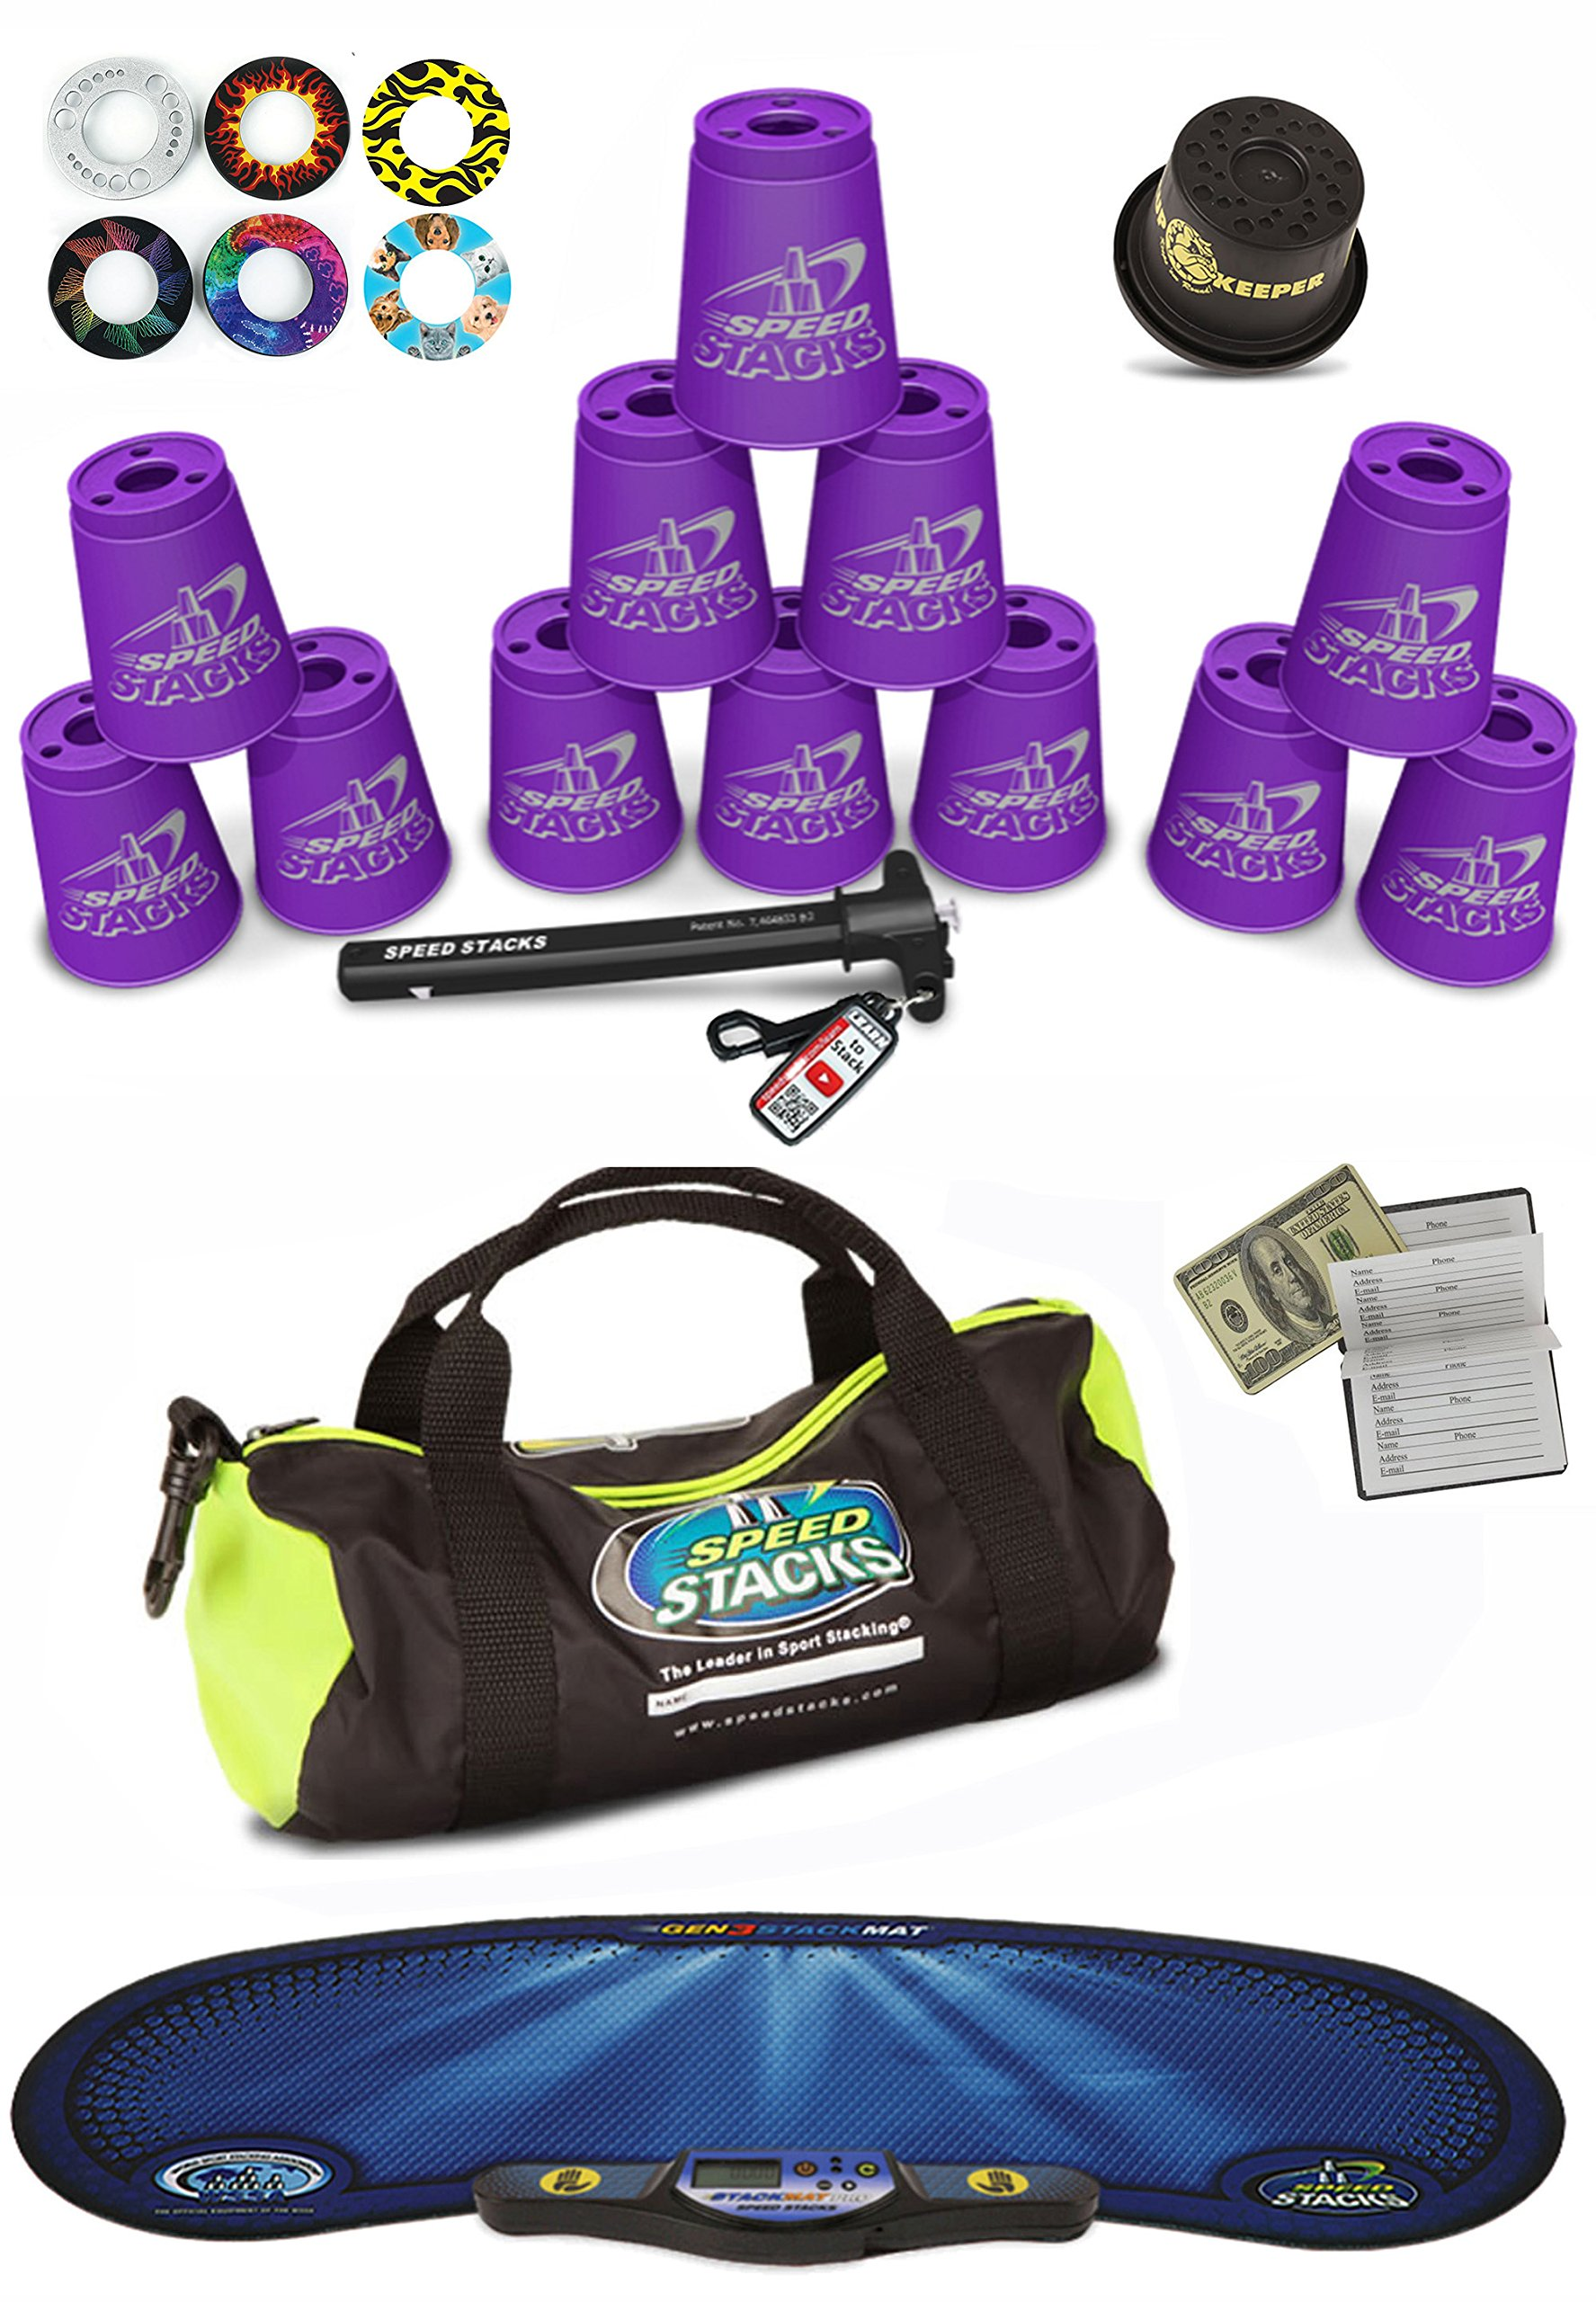 Speed Stacks Custom Combo Set - The Works: 12 PURPLE 4'' Cups, Cup Keeper, Quick Release Stem, Pro Timer, Gen 3 Mat, Snap Tops, Gear Bag + FREE Bonus: $100 Design Magnetic Credit Card Size Address Book by Speed Stacks